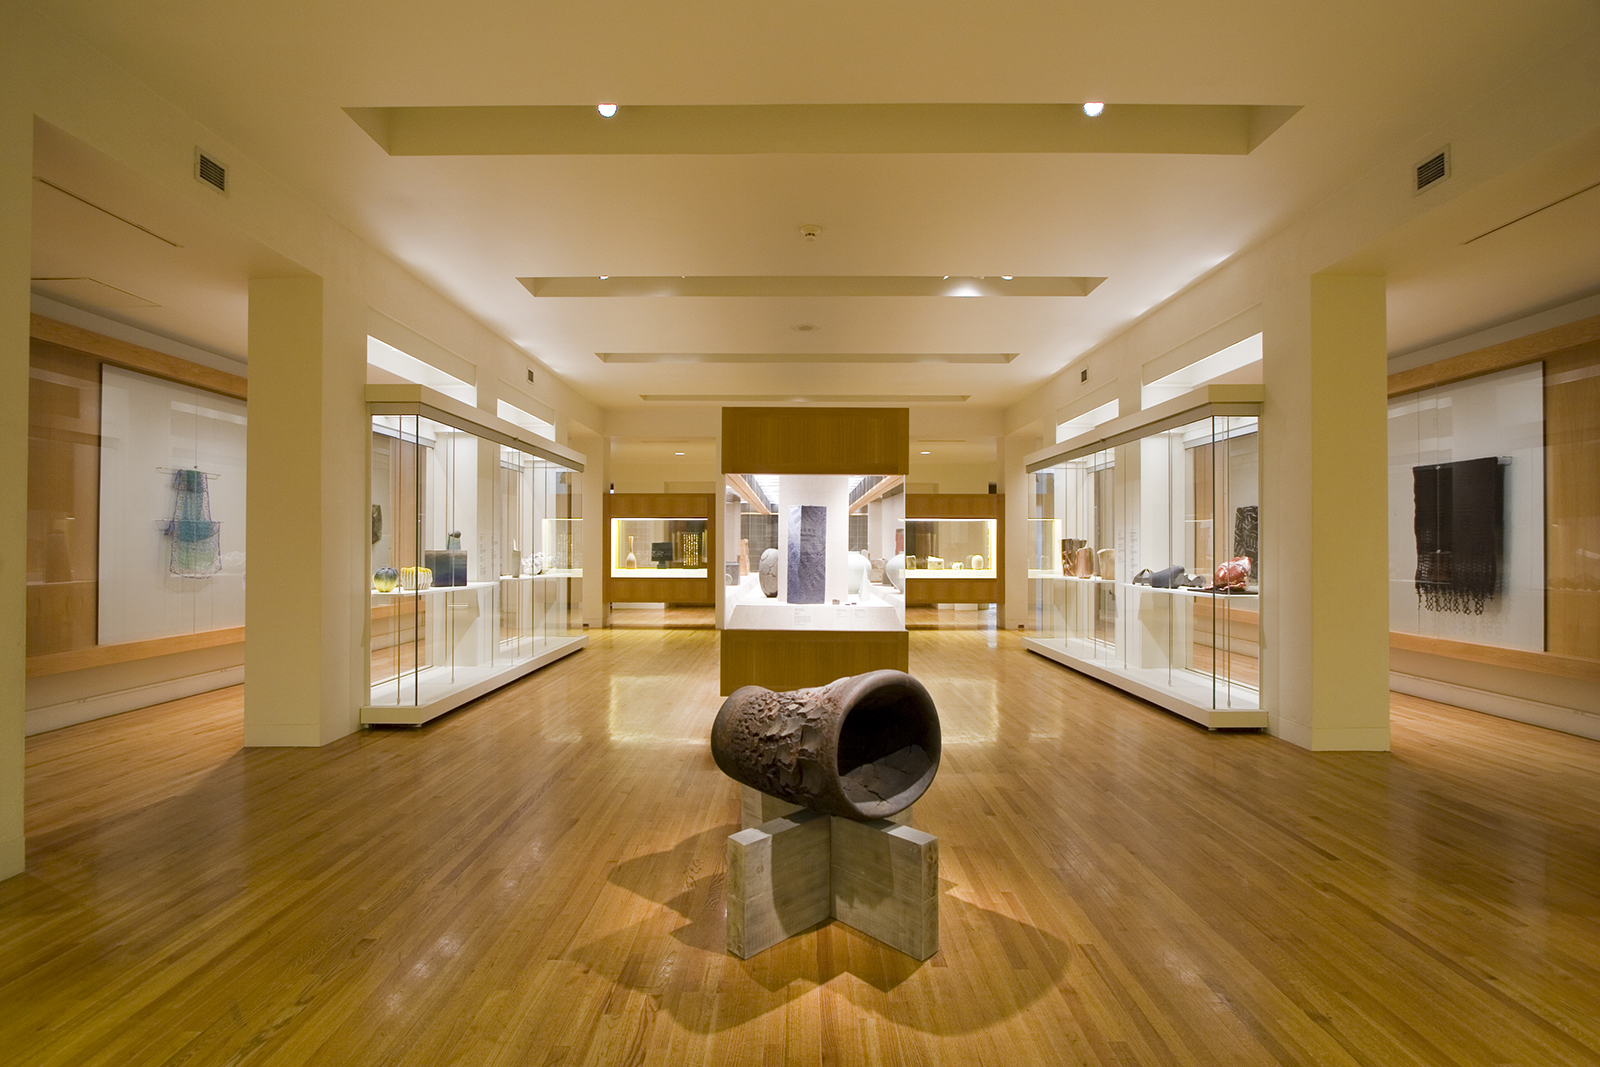 The exhibition took place in the Japanese Sword and Kimono Gallery where existing cases were adapted and new casework was added to befit the contemporary nature of the objects in the exhibition.